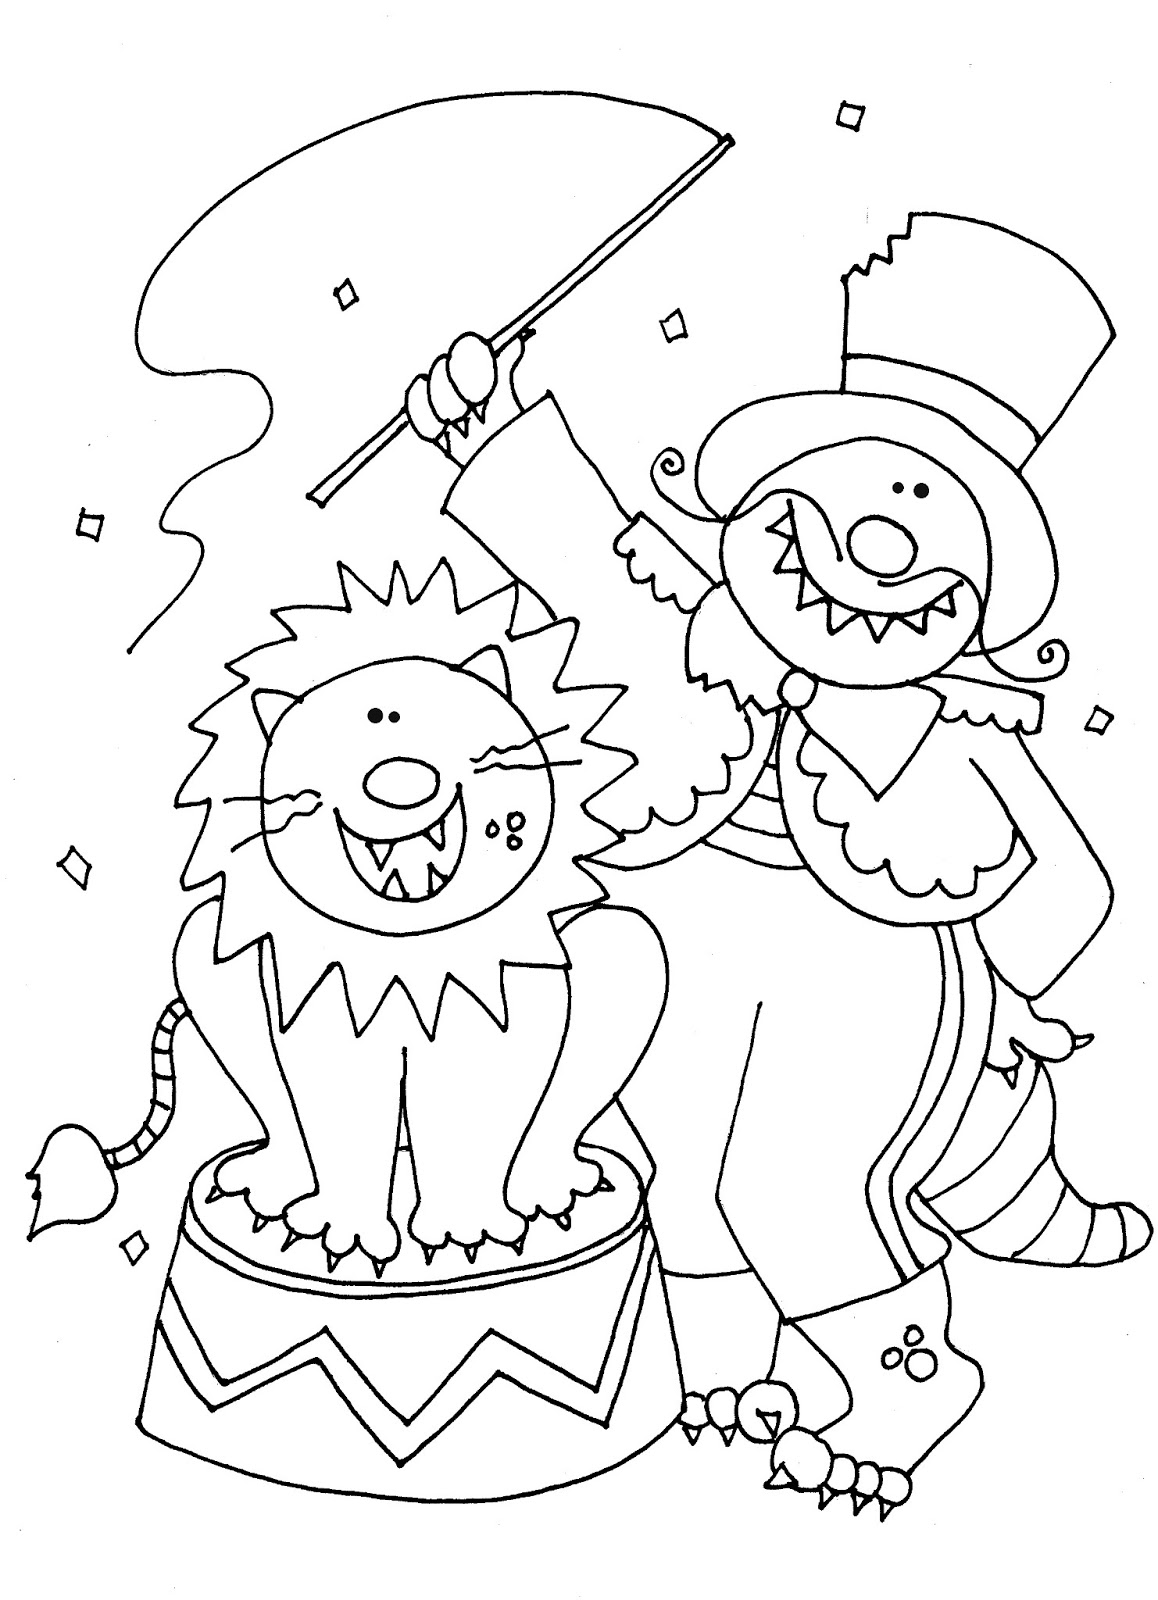 Free Dearie Dolls Digi Stamps Circus Lion Taming Beast